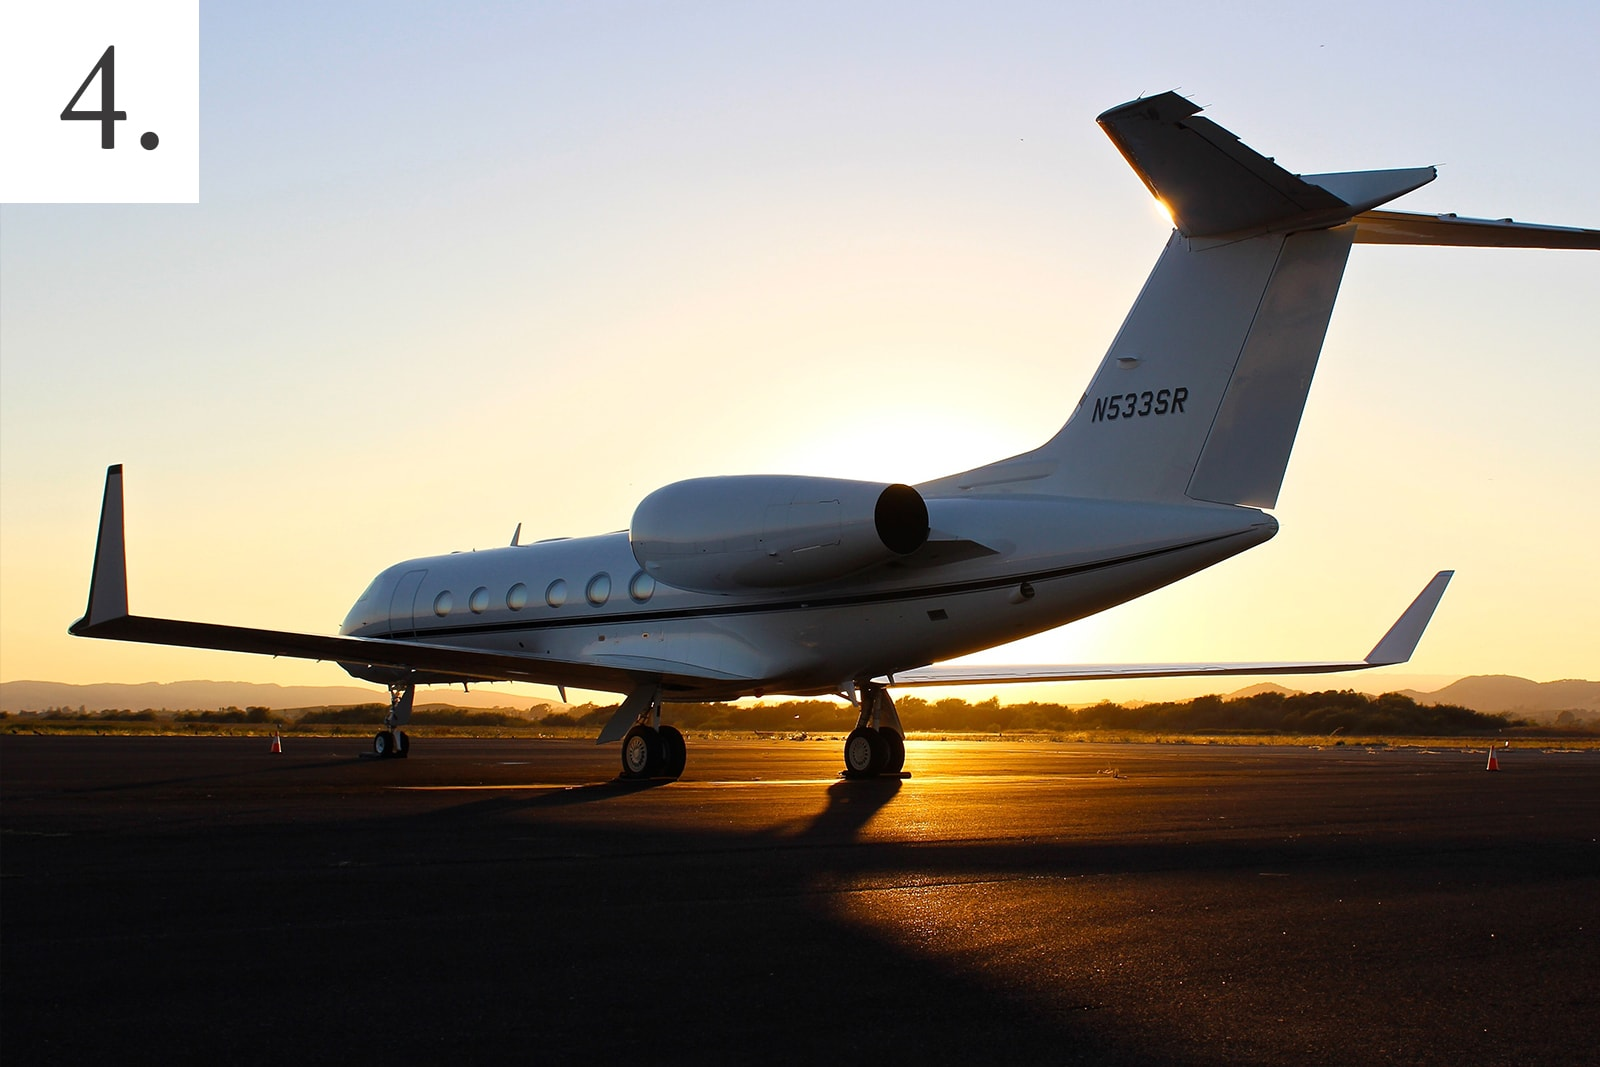 A private jet sitting on the tarmac at sunset representing safe flying options during the Coronavirus (COVID-19) pandemic.